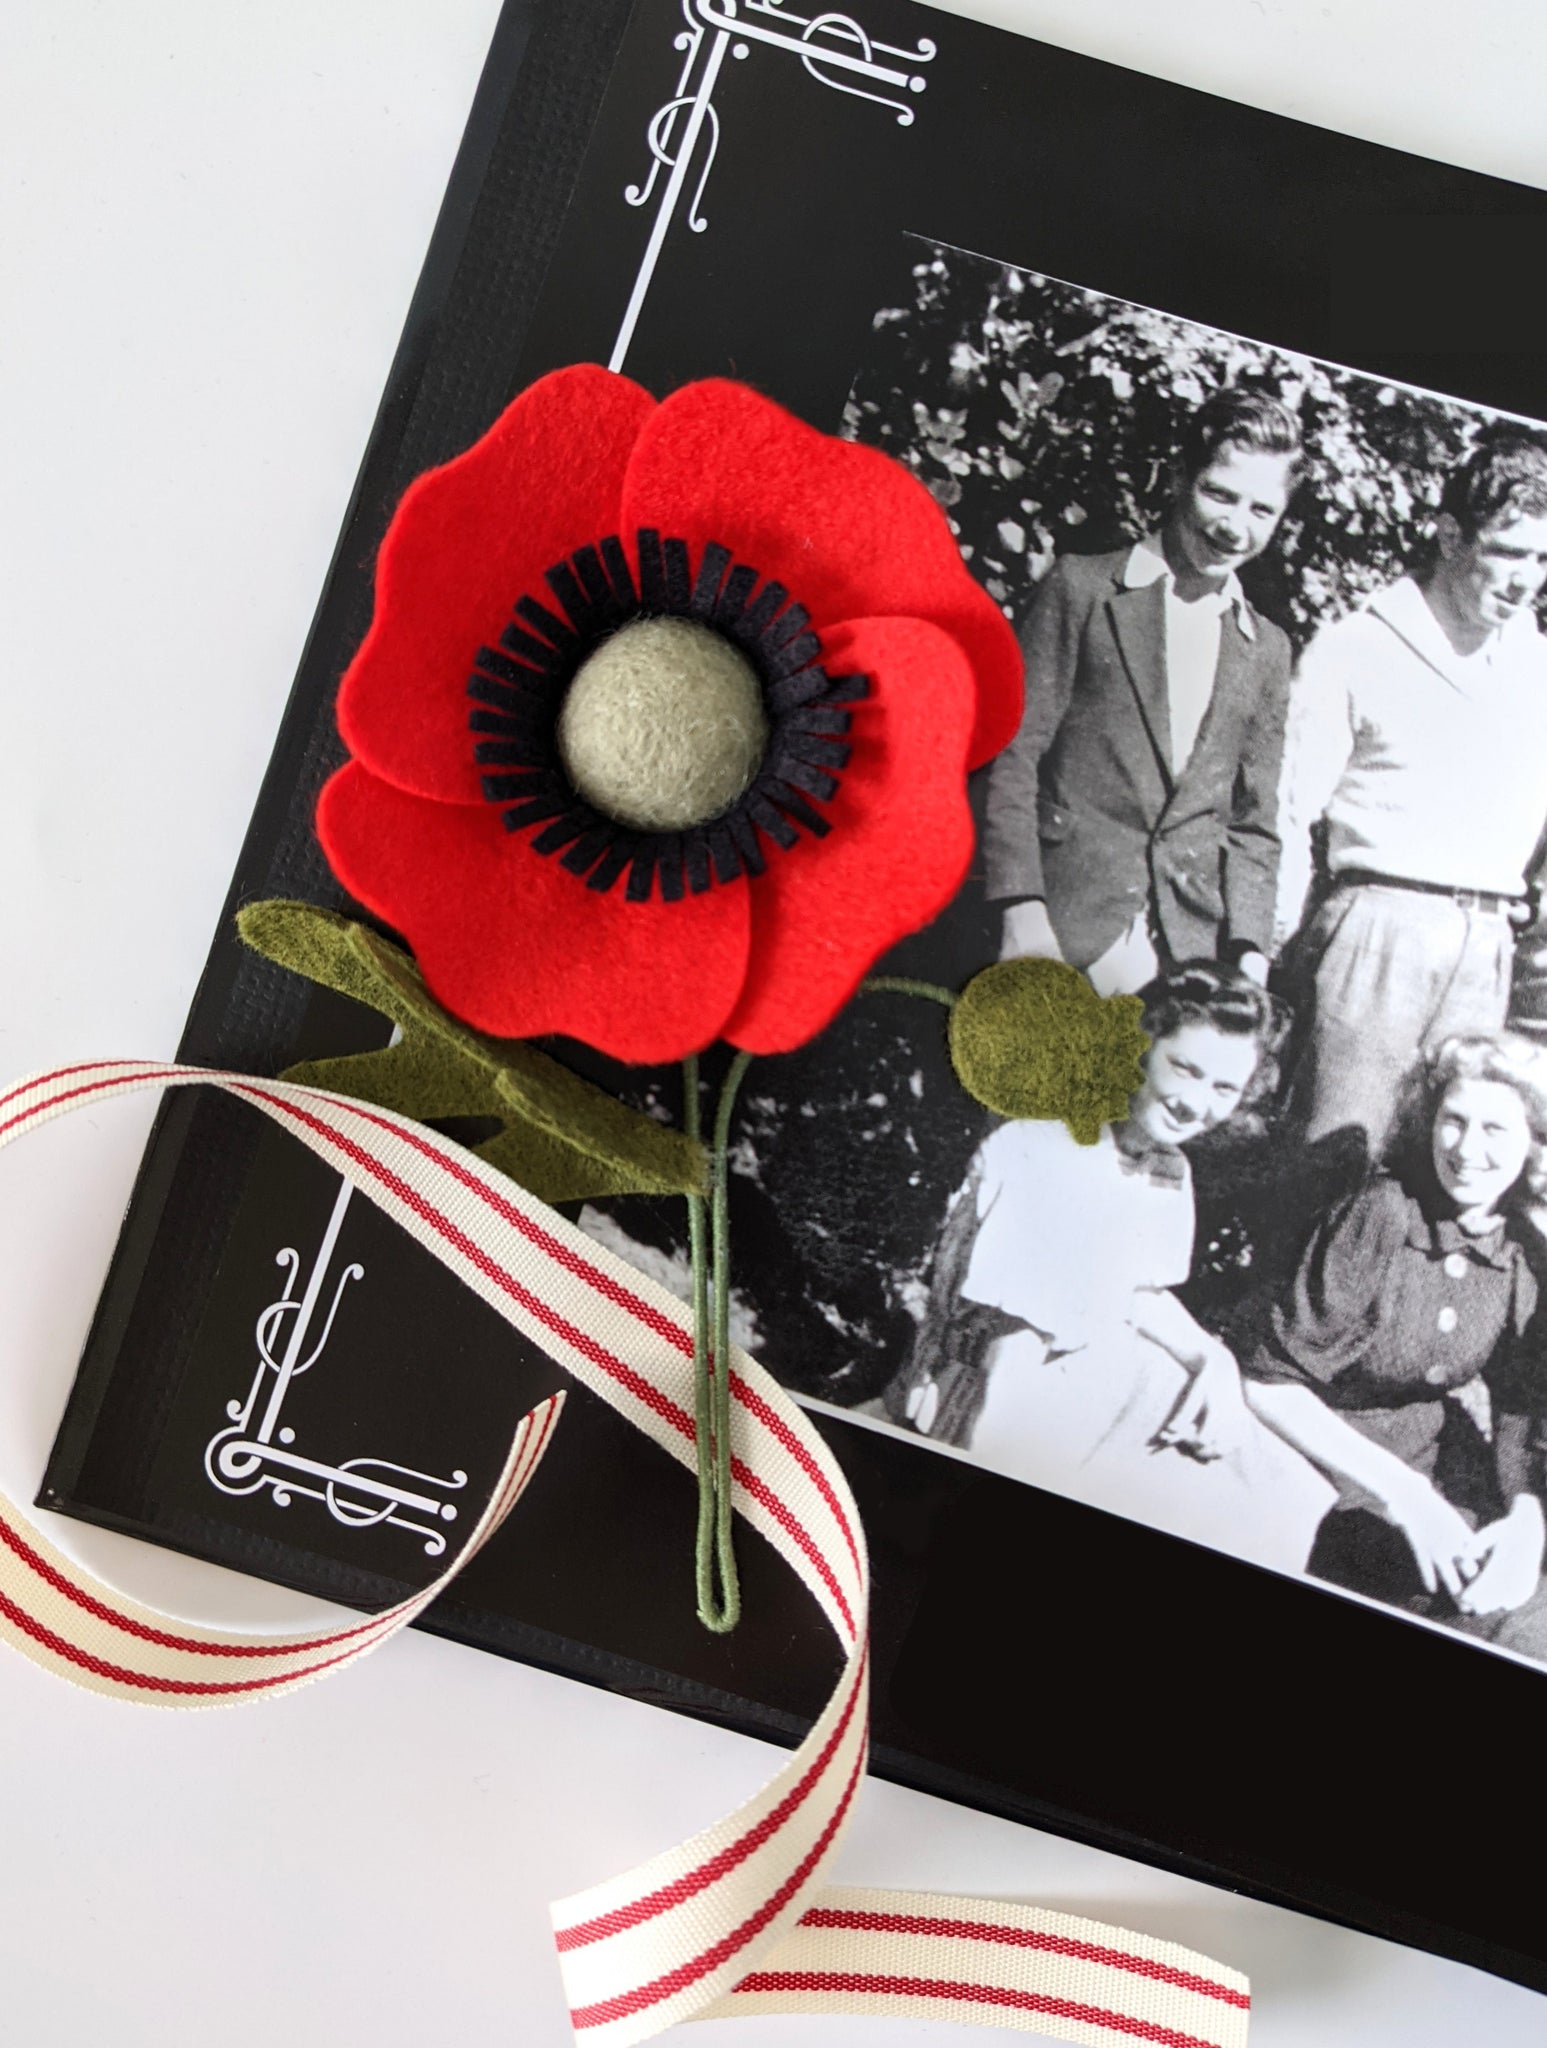 Finished poppy remembrance pin